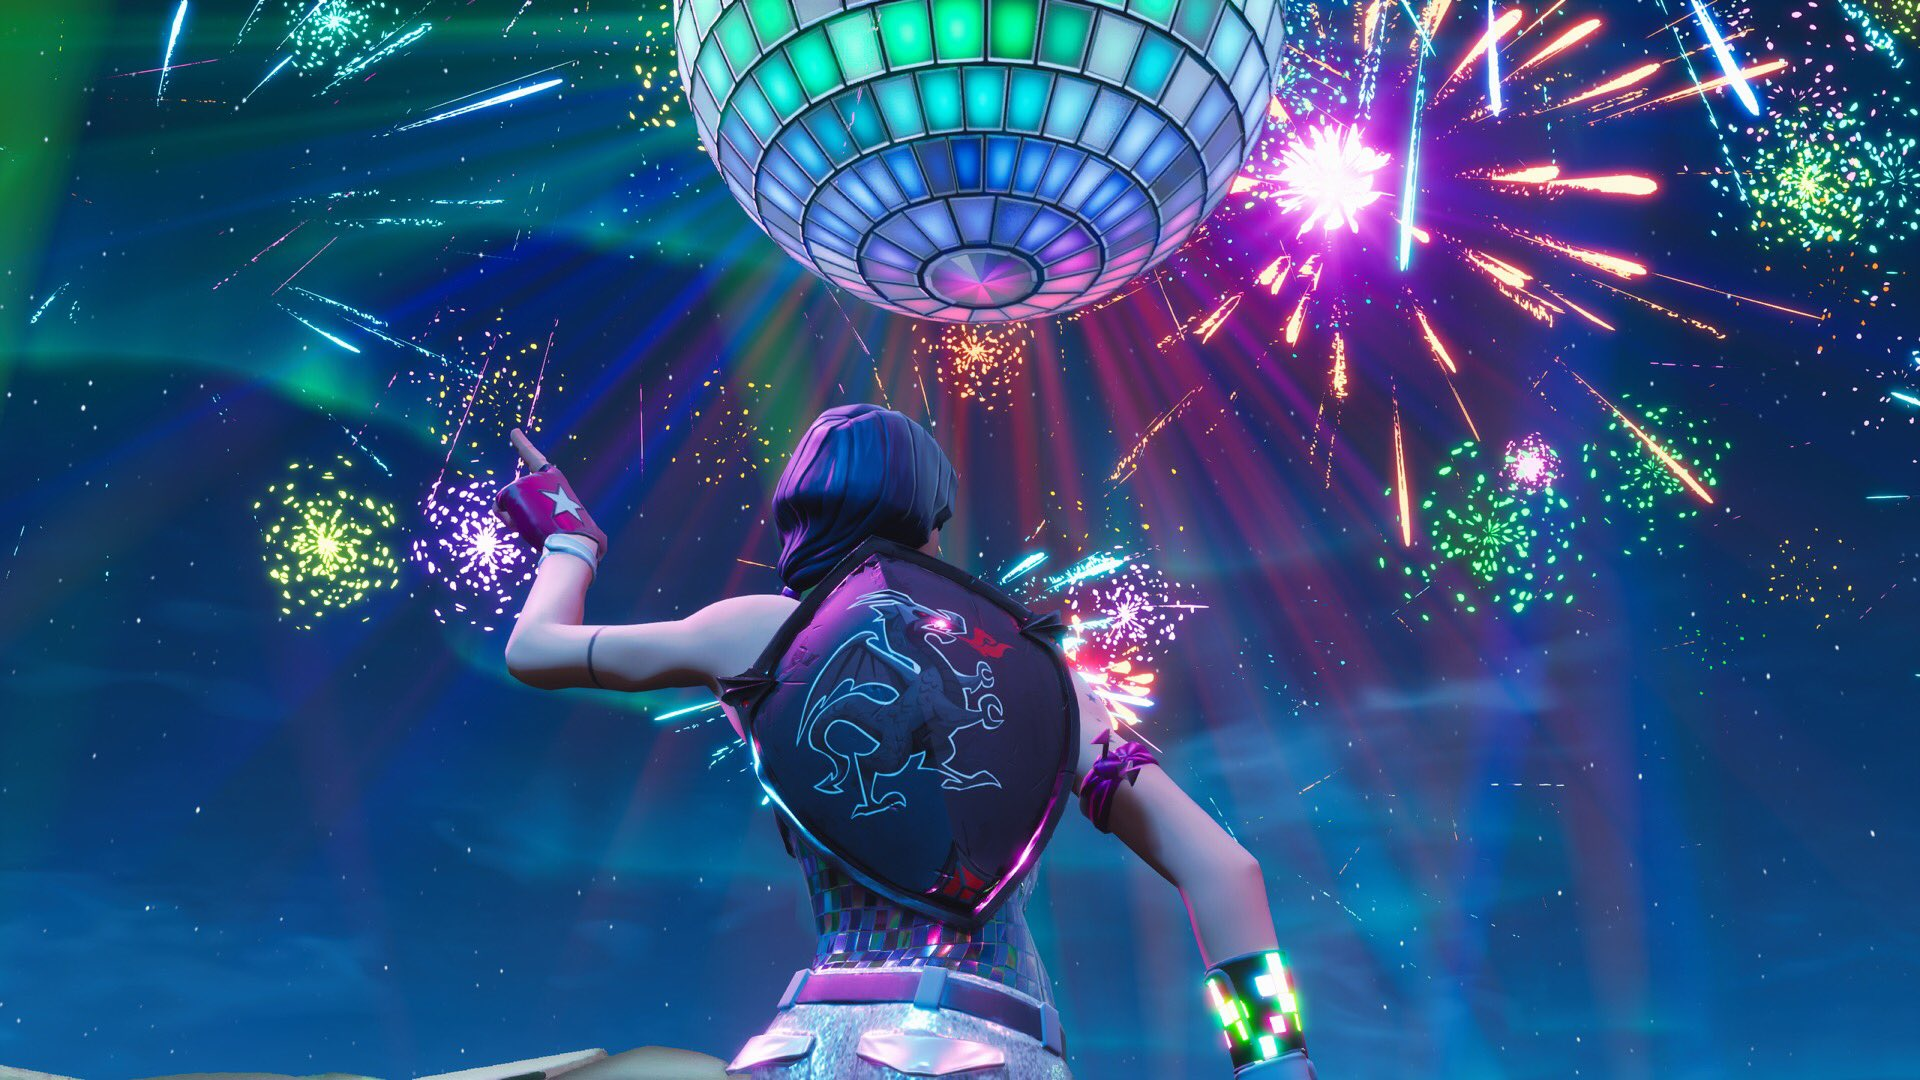 How to celebrate New Year's Eve in 'Fortnite'